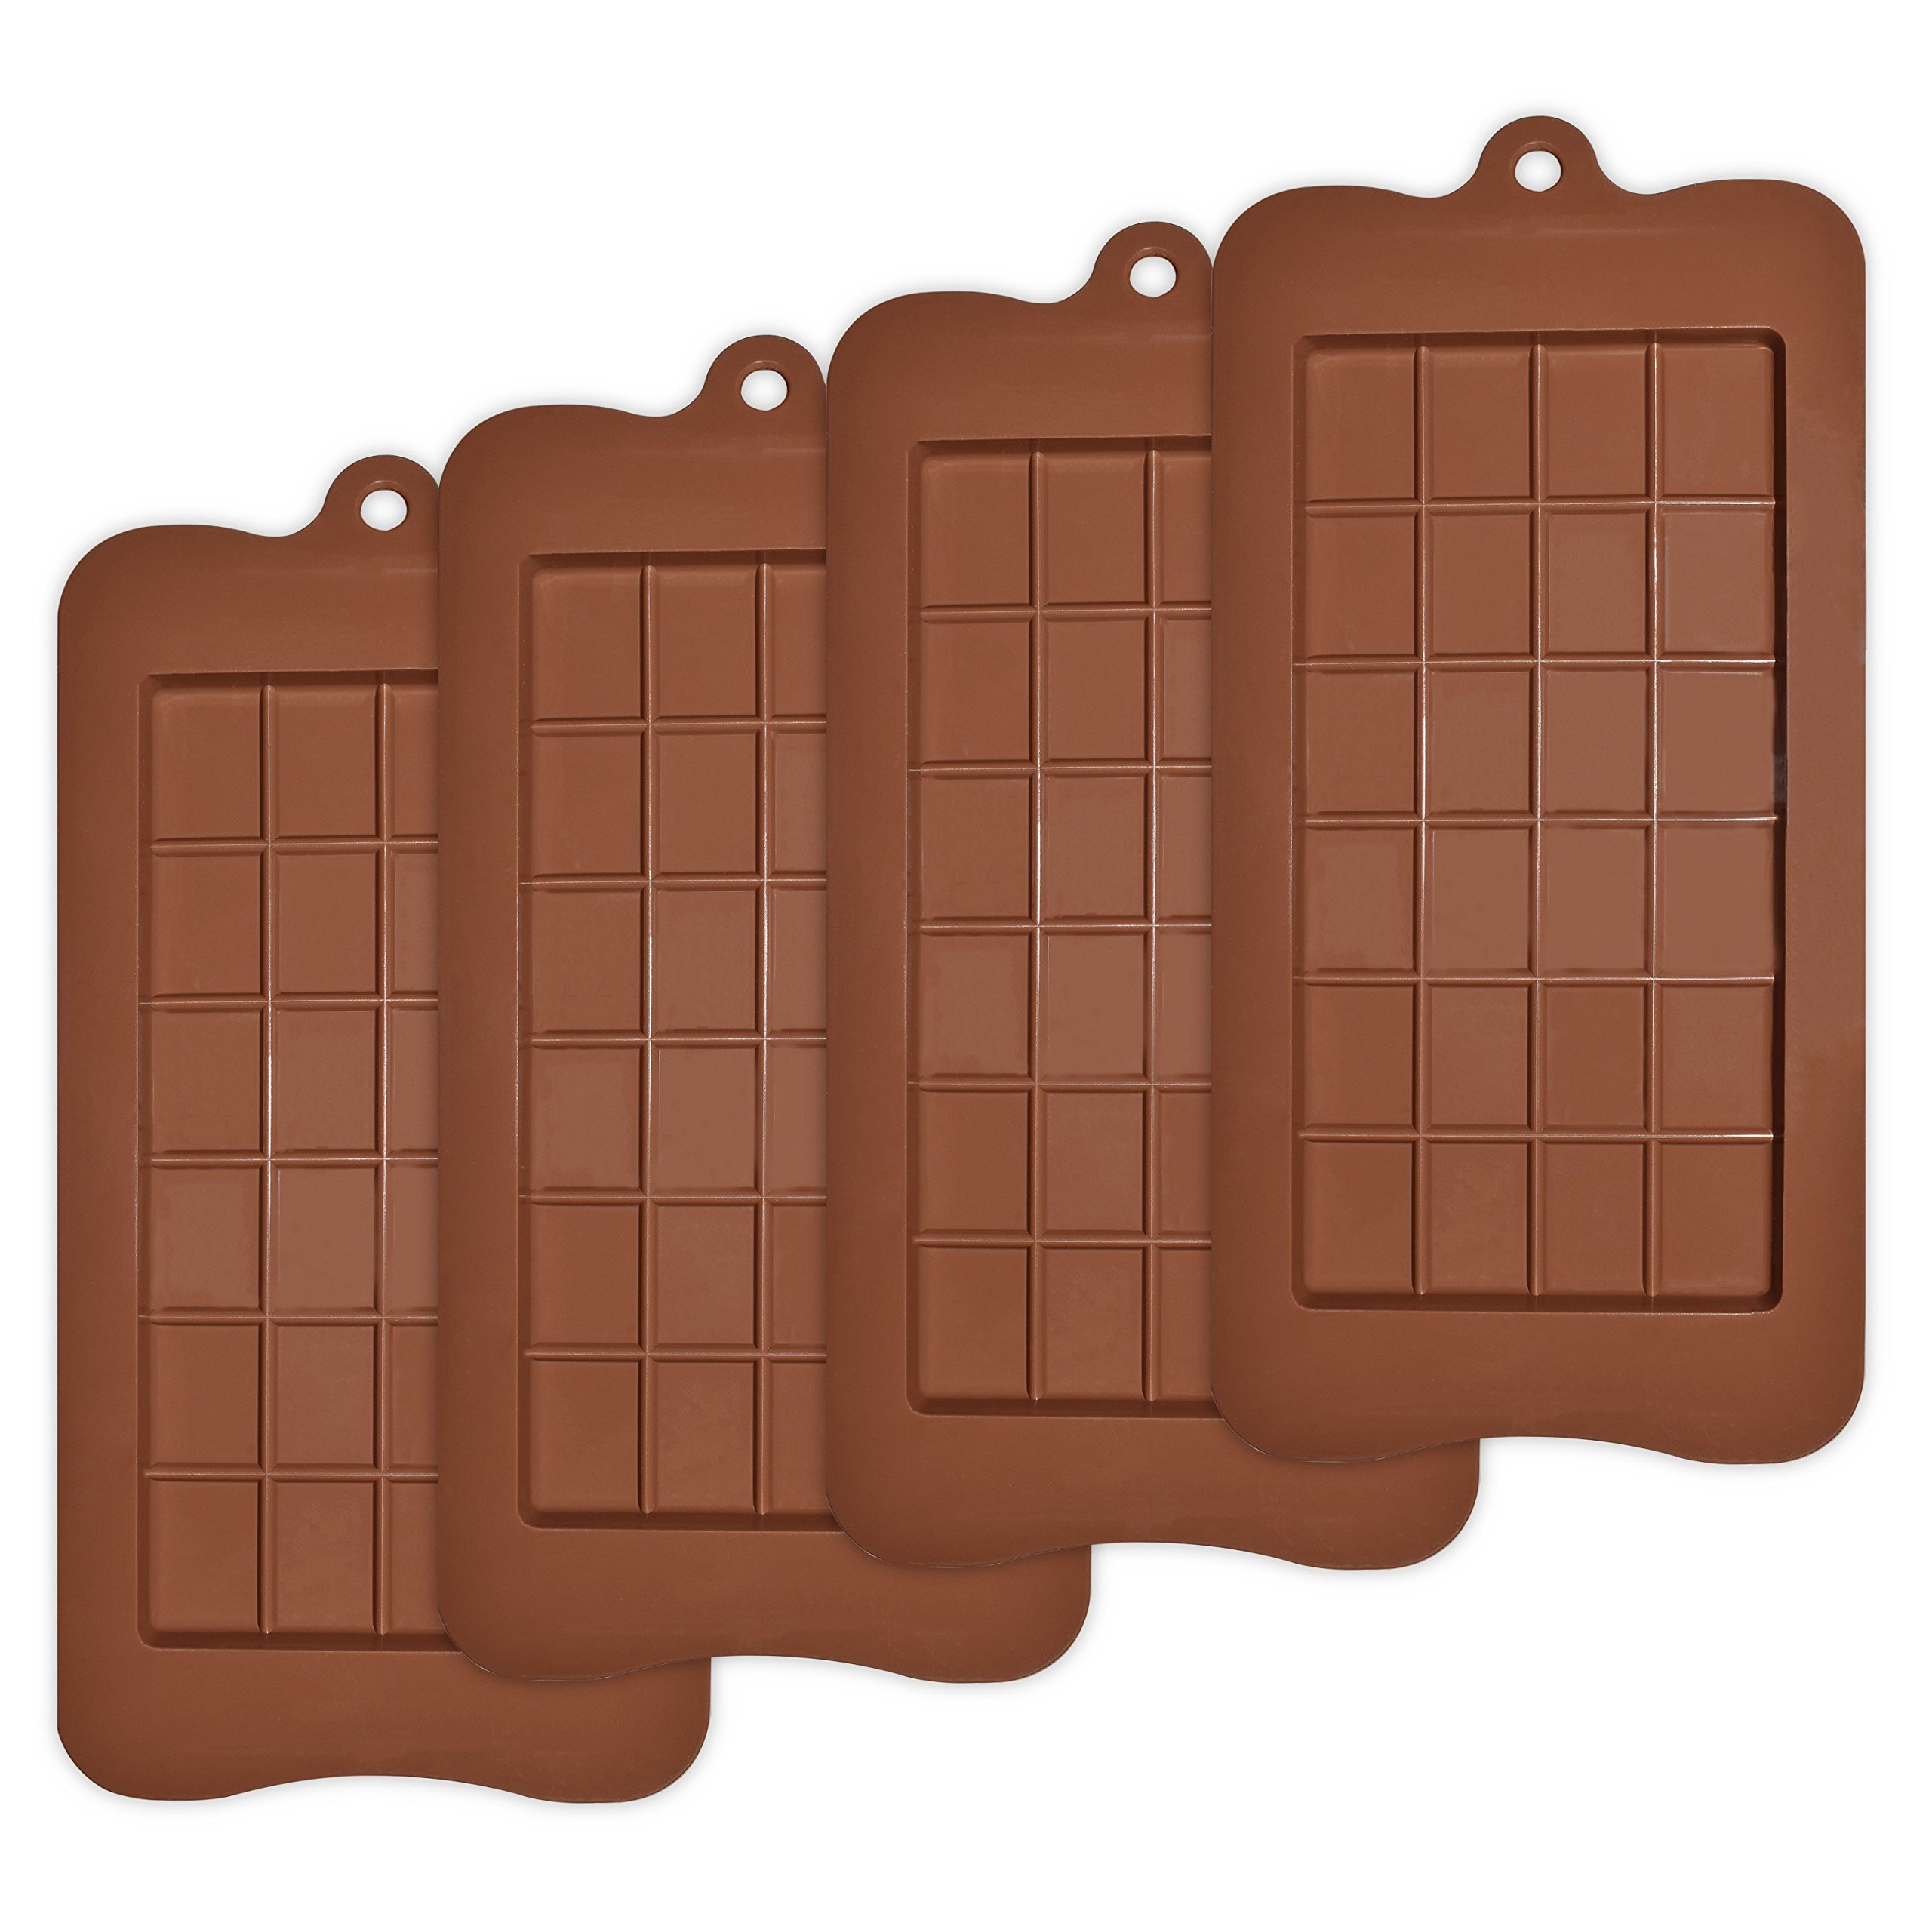 homEdge Break-Apart Chocolate Molds, Set of 4 Packs Food Grade Non-Stick Silicone Protein and Energy Bar Molds